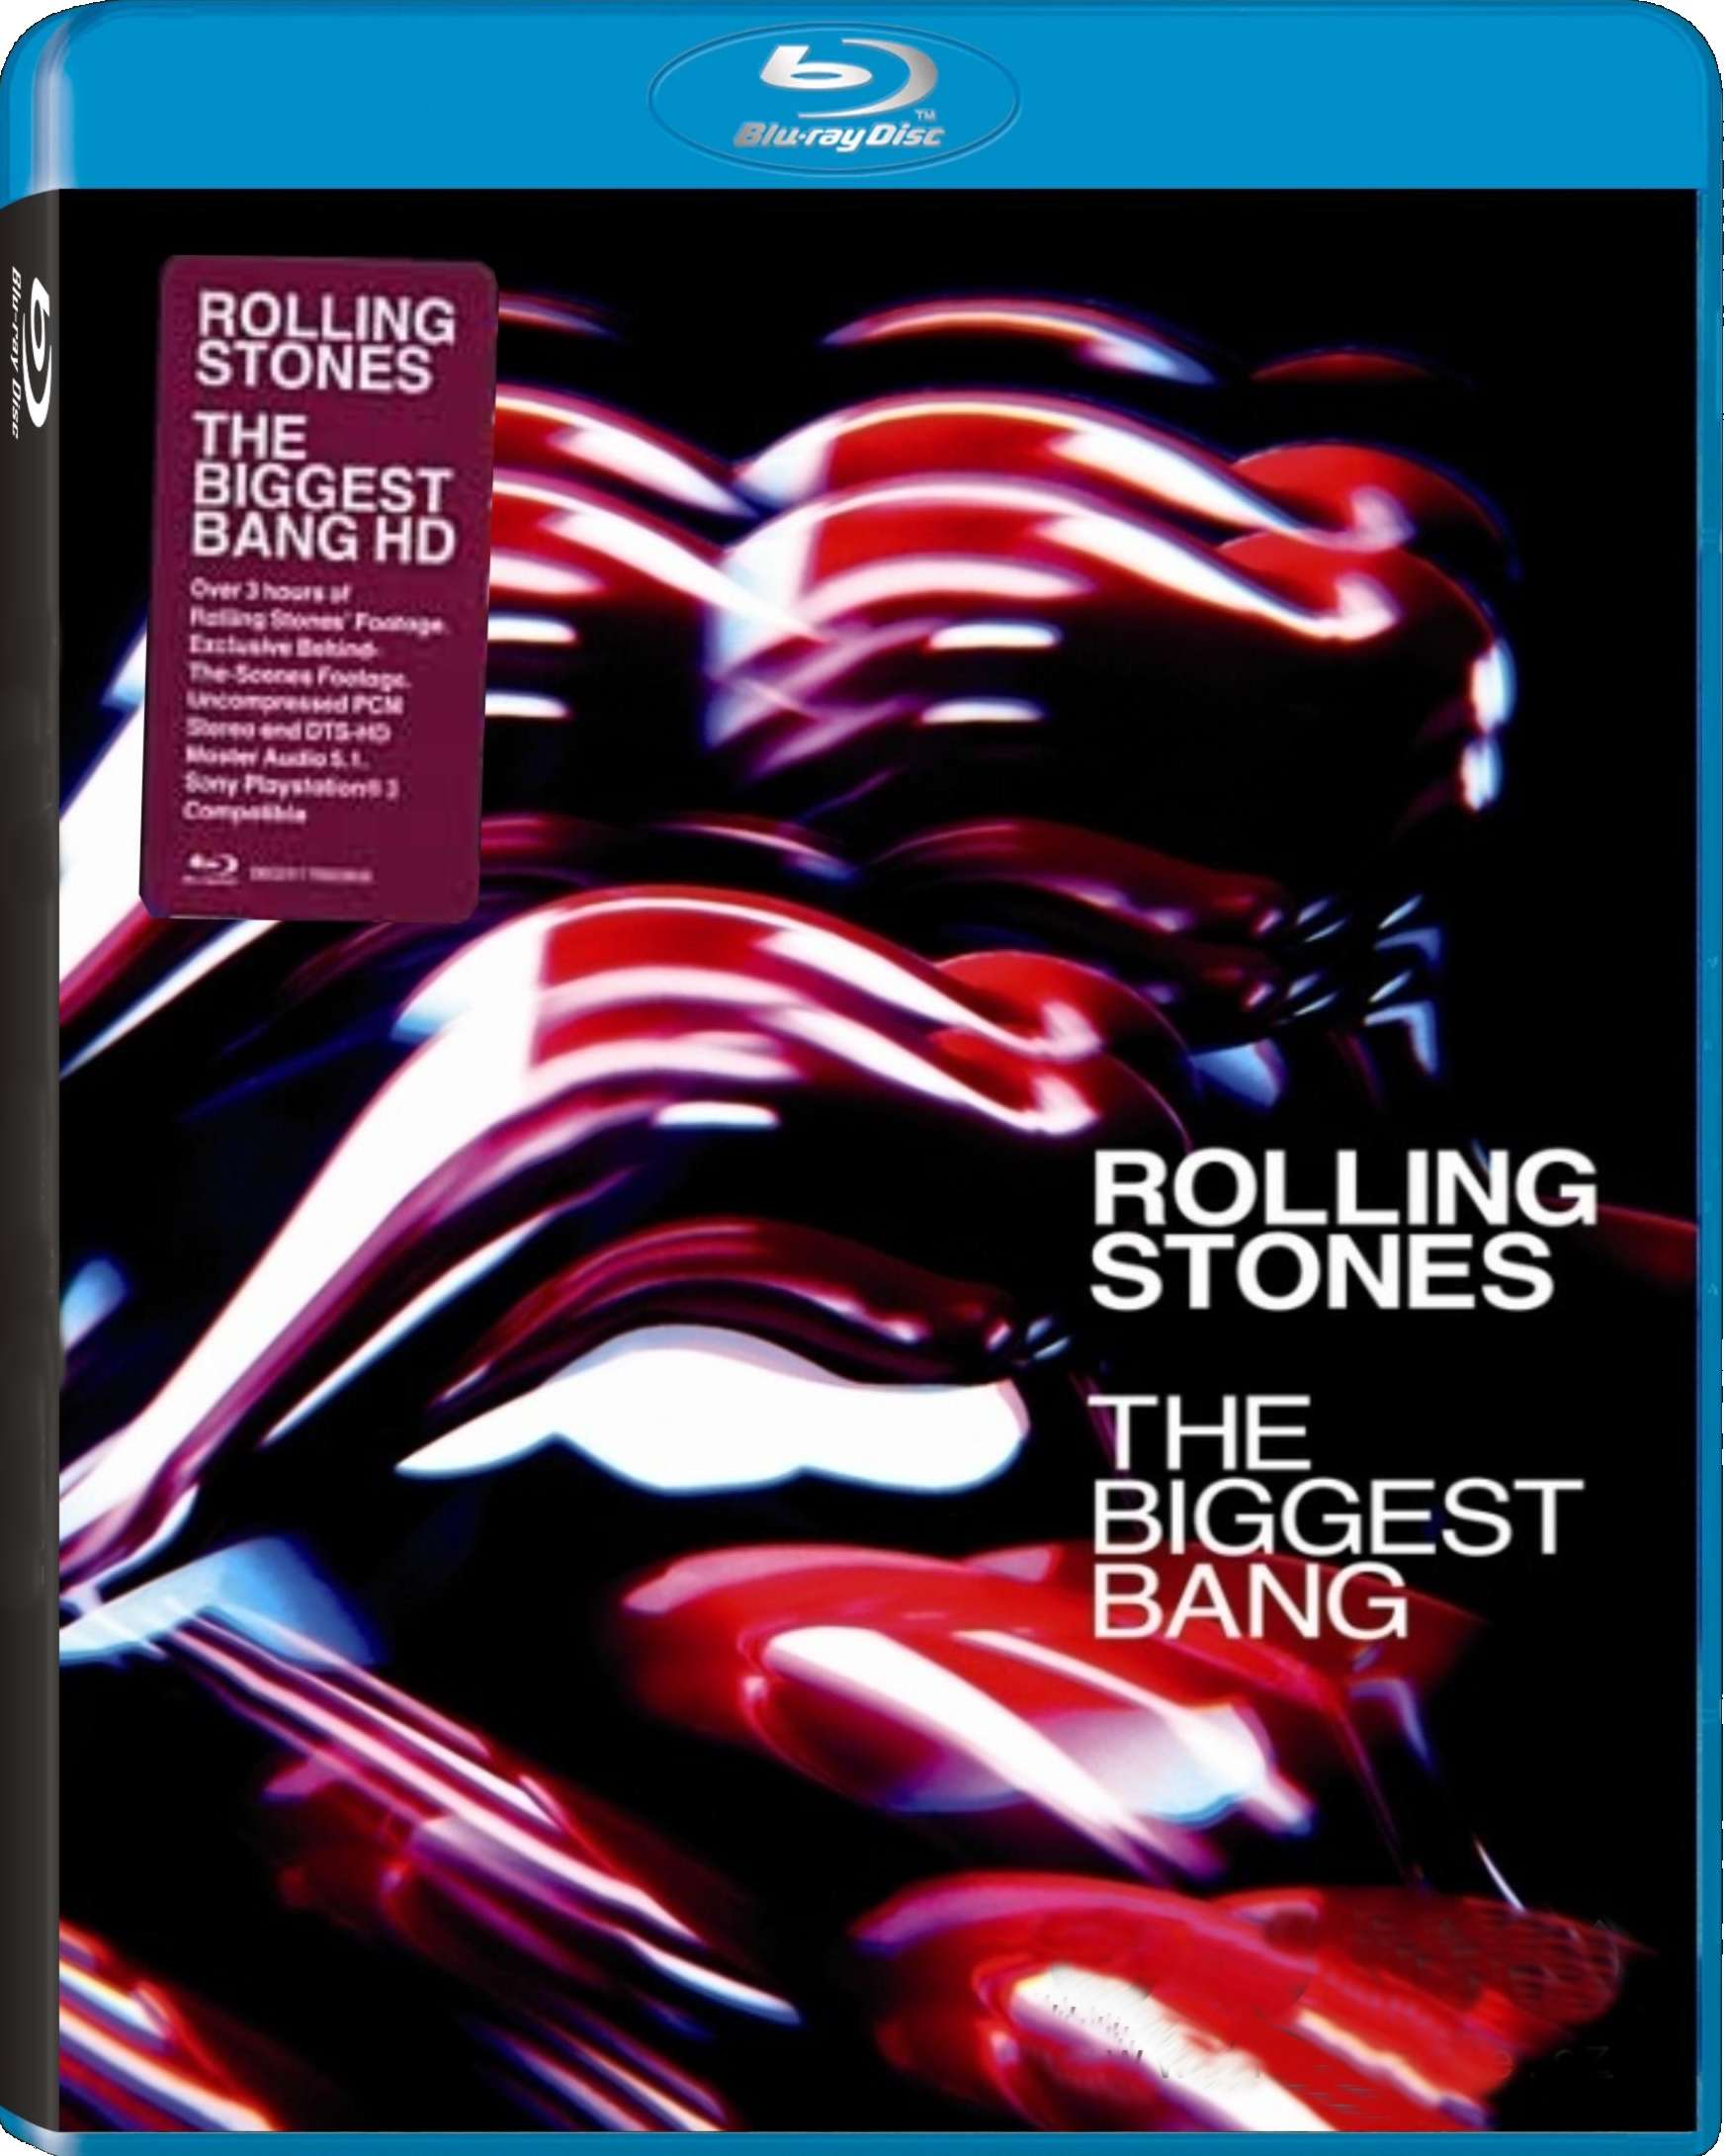 ROLLING STONES - THE BIGGEST BANG - Blu-ray